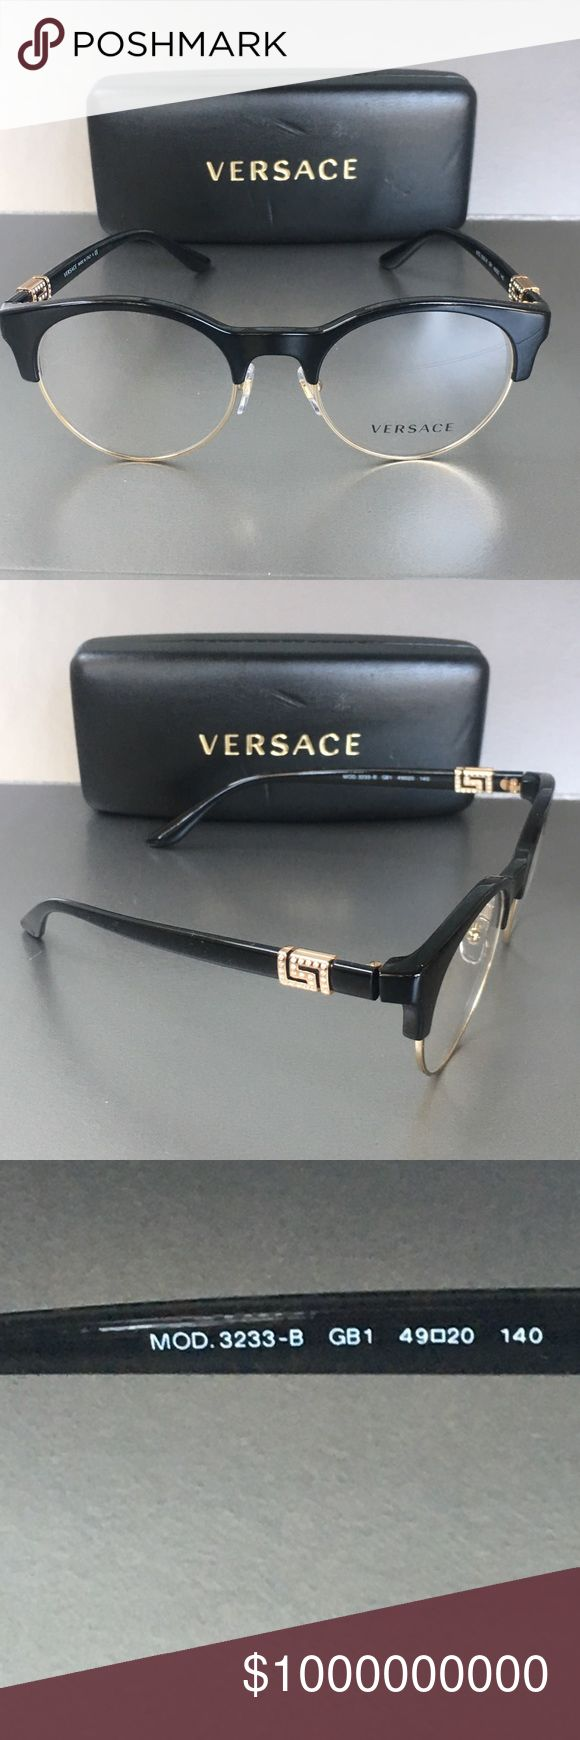 Versace Eyeglasses Eye Glasses Supple curves, clean lines, and truly fashion-forward styles are the hallmark of the Versace brand, and Versace glasses uphold the label's distinguished legacy.  * Gender: Women * Material: Acetate * Style No: MOD-3233B * Color: GB1-Black/Gold with diamantés.  Floor model. Might have a slight scratches on the frames/lenses as well as on the case.   Comes with Hard case & manufacturer's lenses.  No trade. Make me an offer!! Versace Accessories Glasses